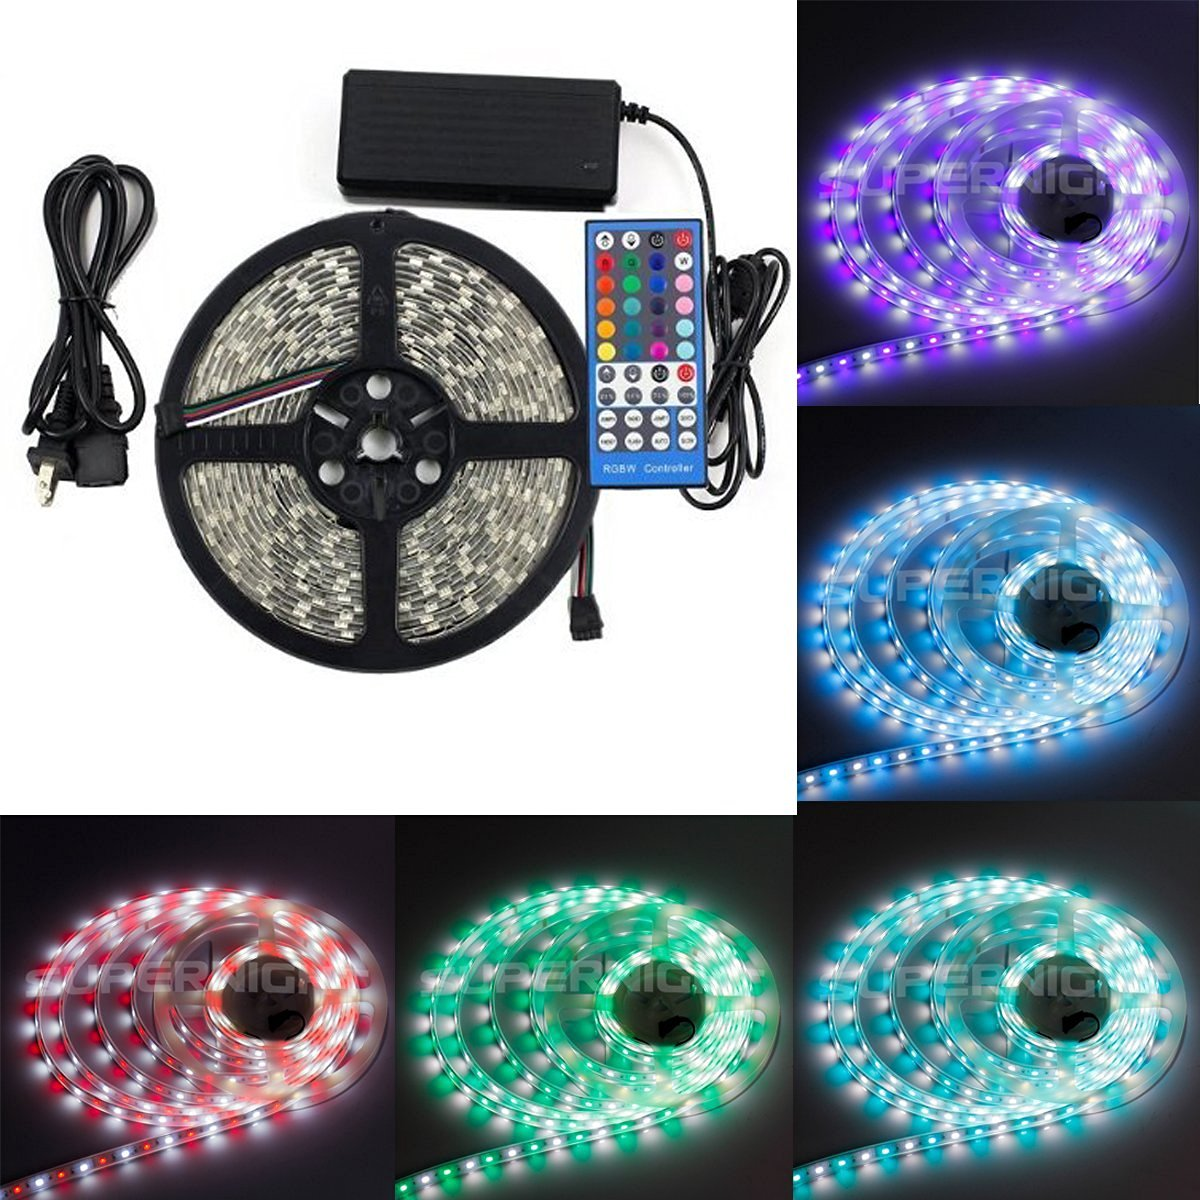 Eastchina®| Smd 5050 Waterproof Full Kit Rgbw Flexible Novelty LED Light Strip, 16.4ft 5m RGB + Cool White Mixed Color Changing Flexible Rgbw LED Strip Lights with 300 Leds, with 40-key Rgbw LED Strip Remote & 12v 5a Adapter